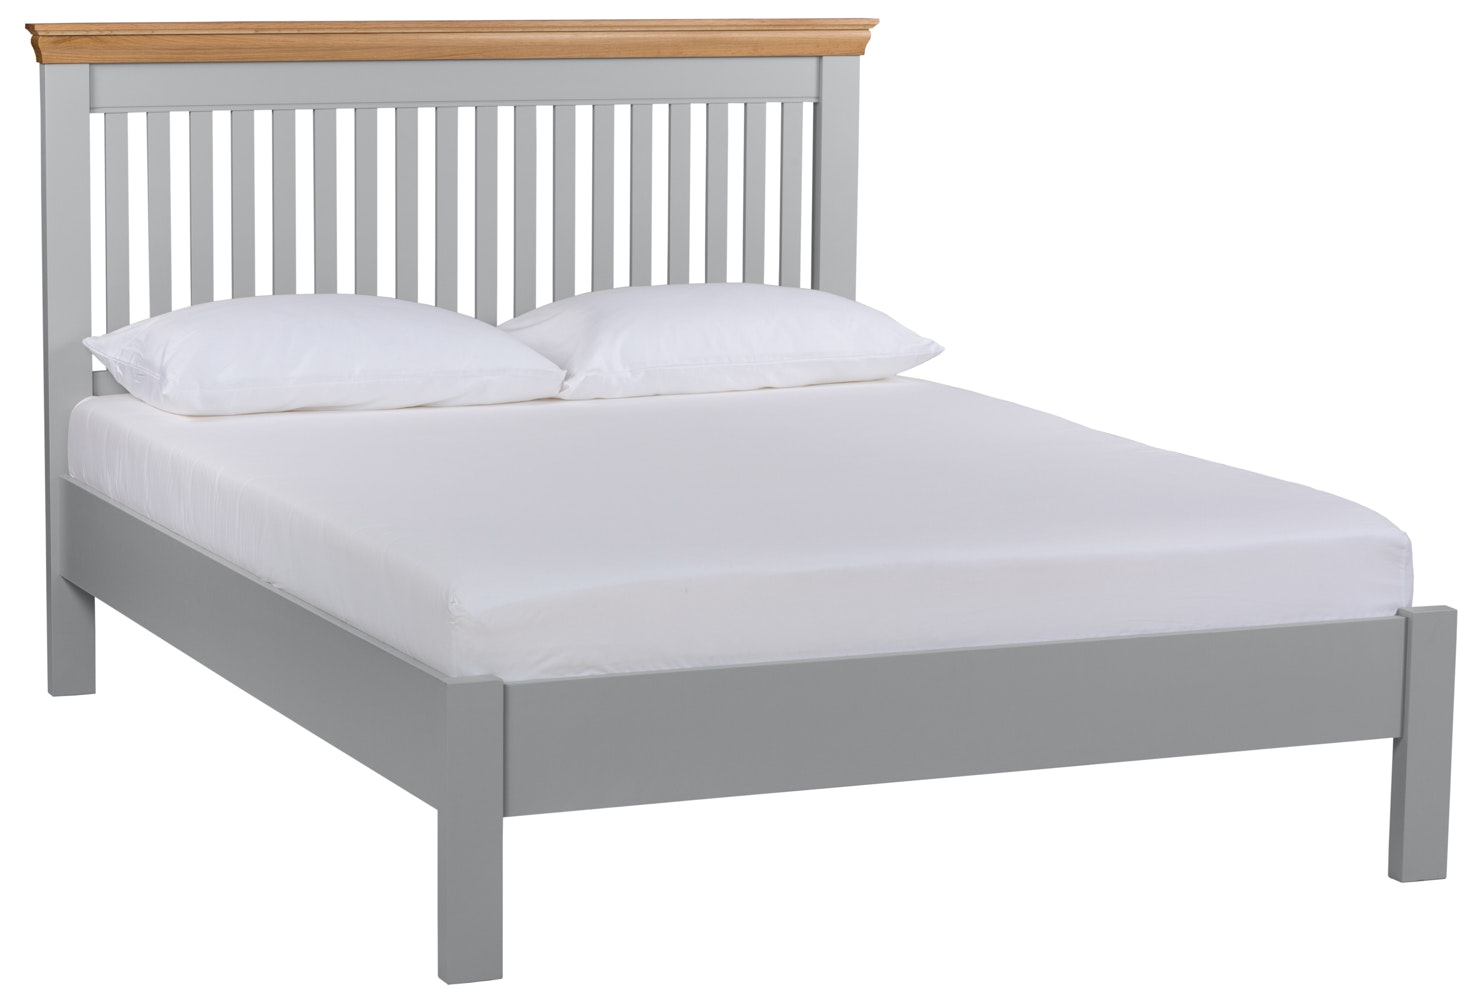 Ascott Bedframe | Colourtrend| 6ft